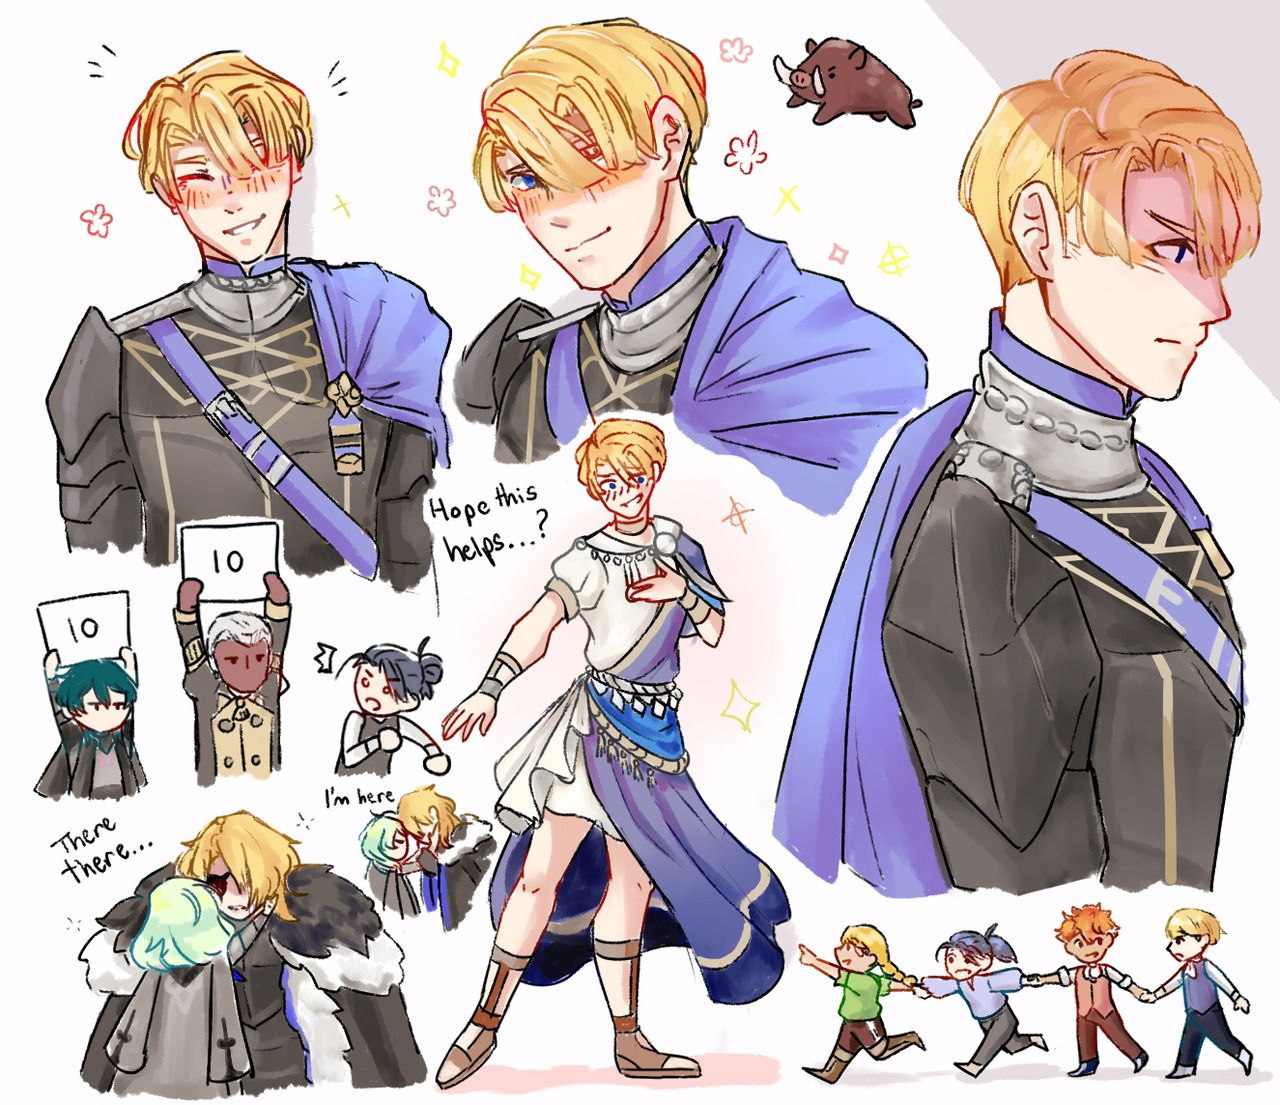 Dimitri Alexandre Blaiddyd Tumblr Fire Emblem Fire Emblem Fates Fire Emblem Games He is one of the main protagonists and playable characters in fire emblem: dimitri alexandre blaiddyd tumblr